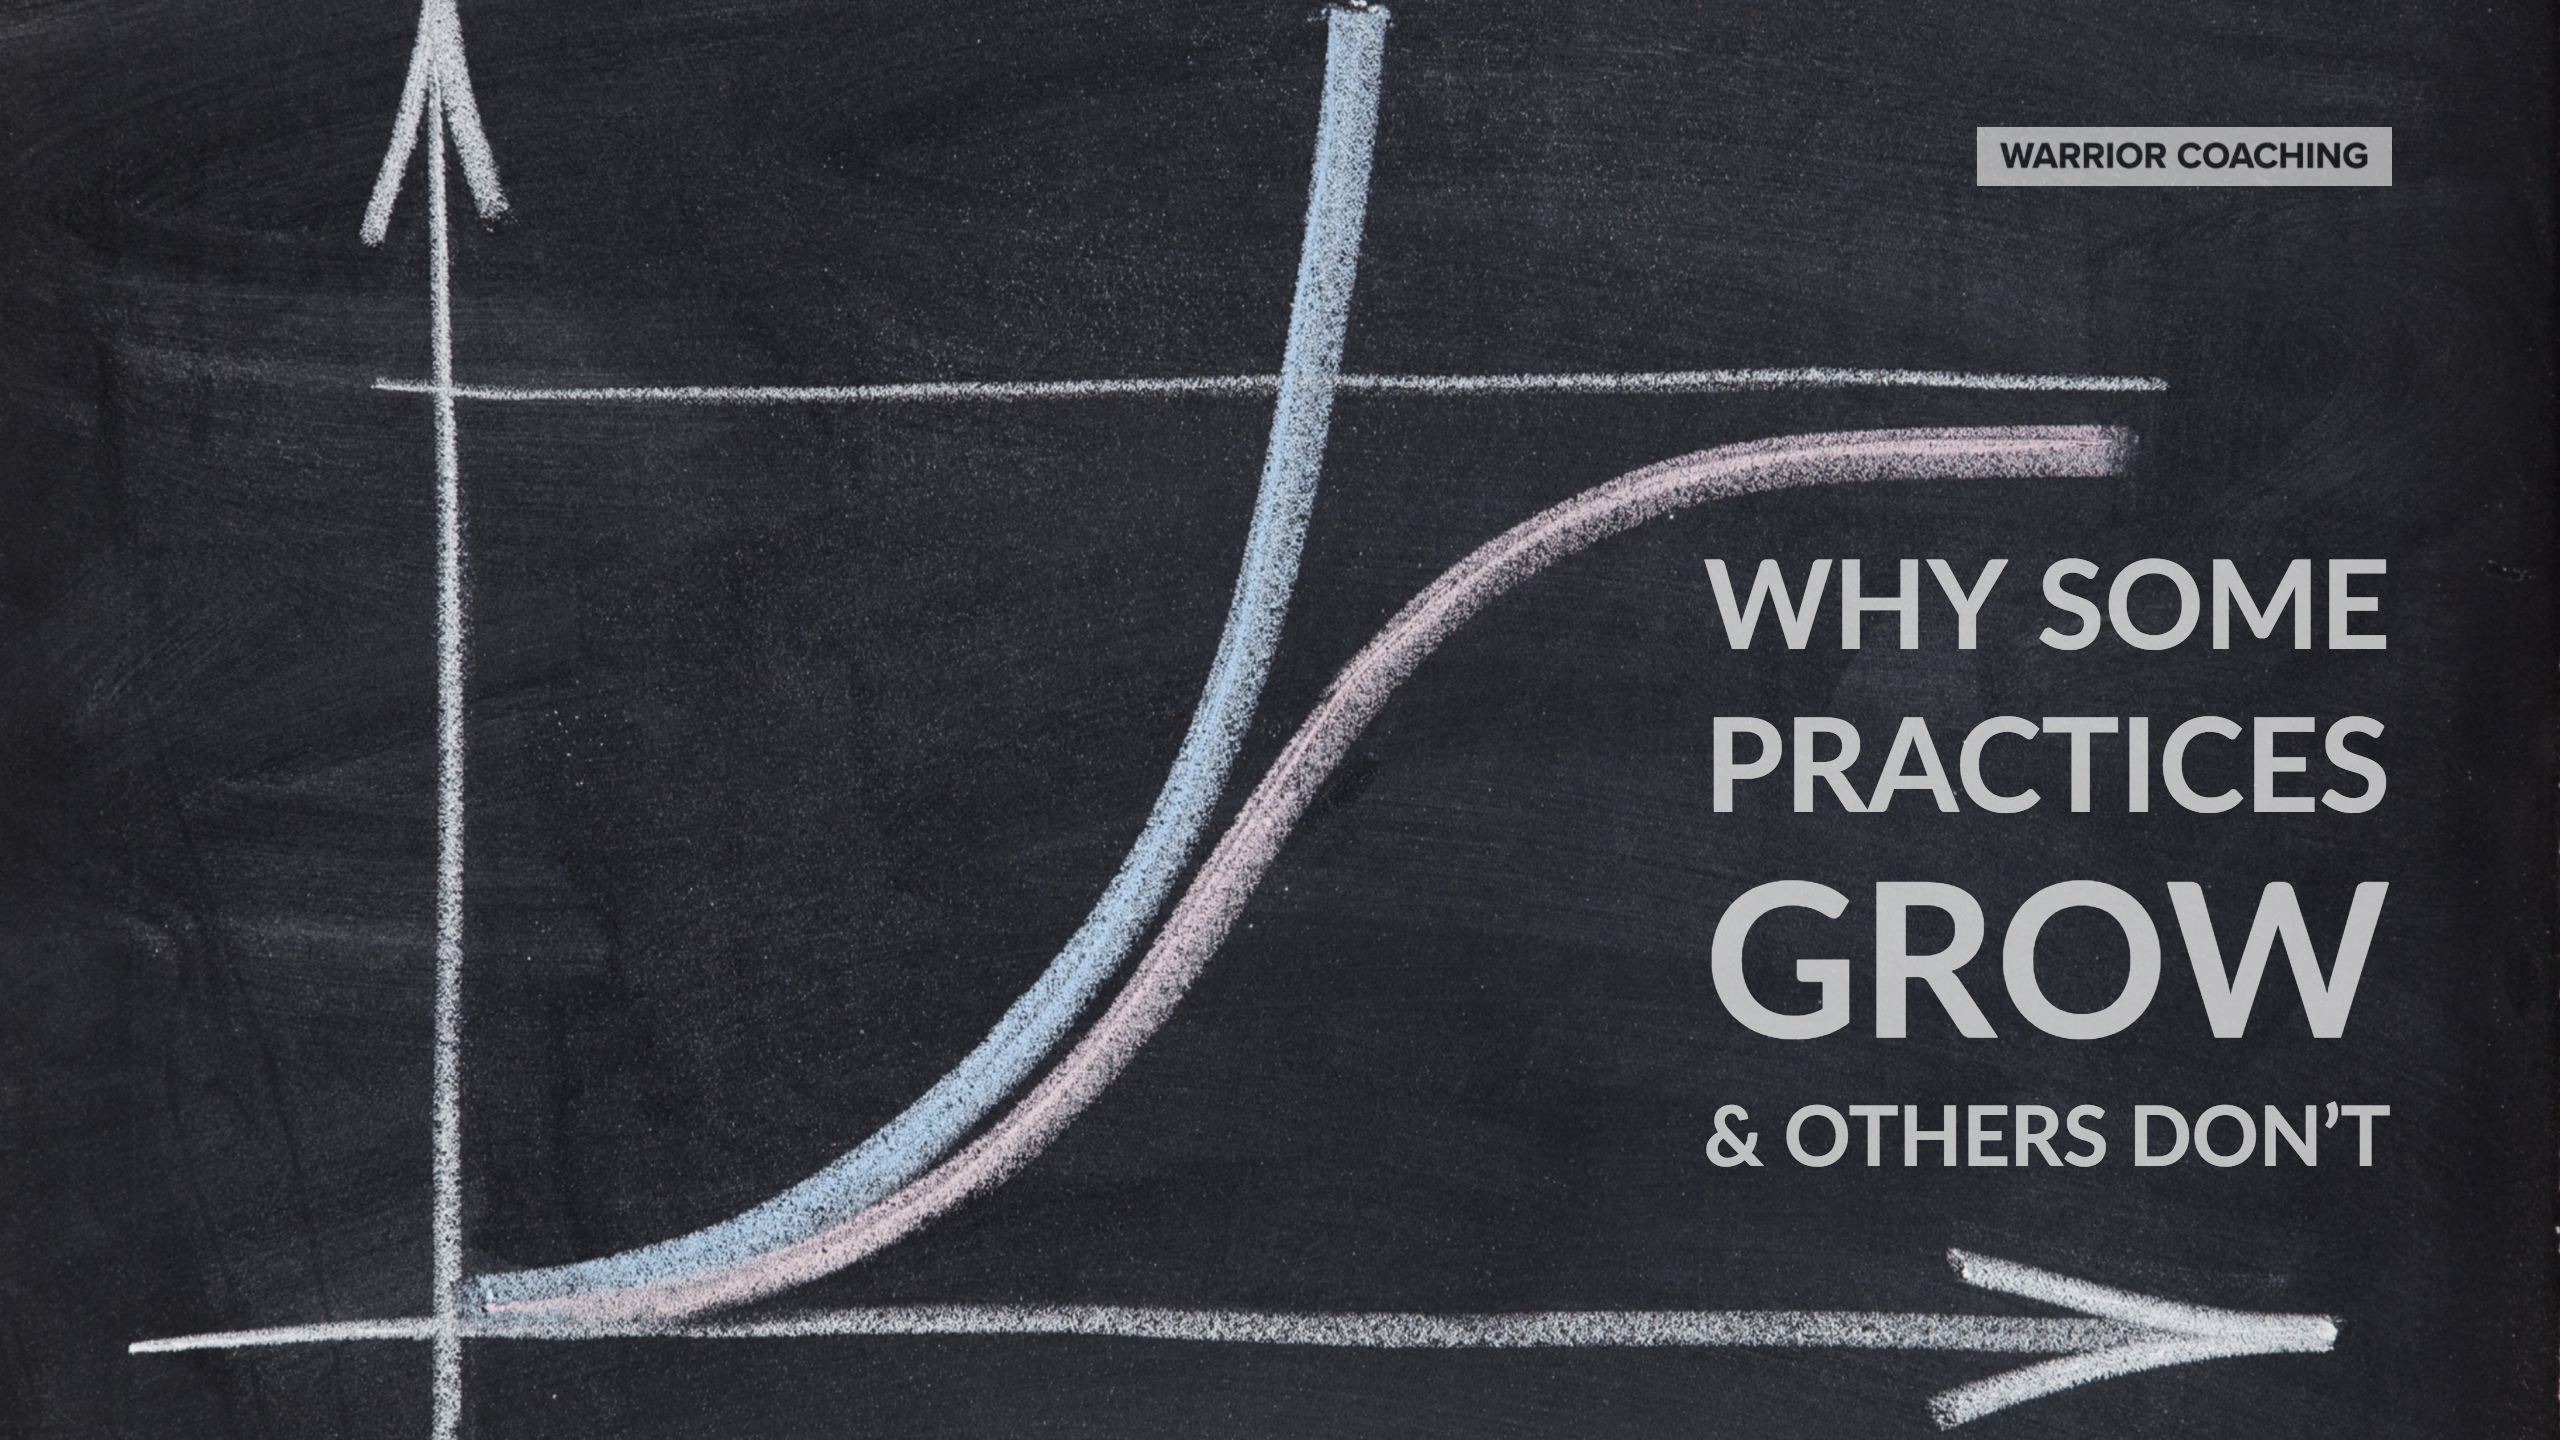 Why Some Practices Grow and Others Don't